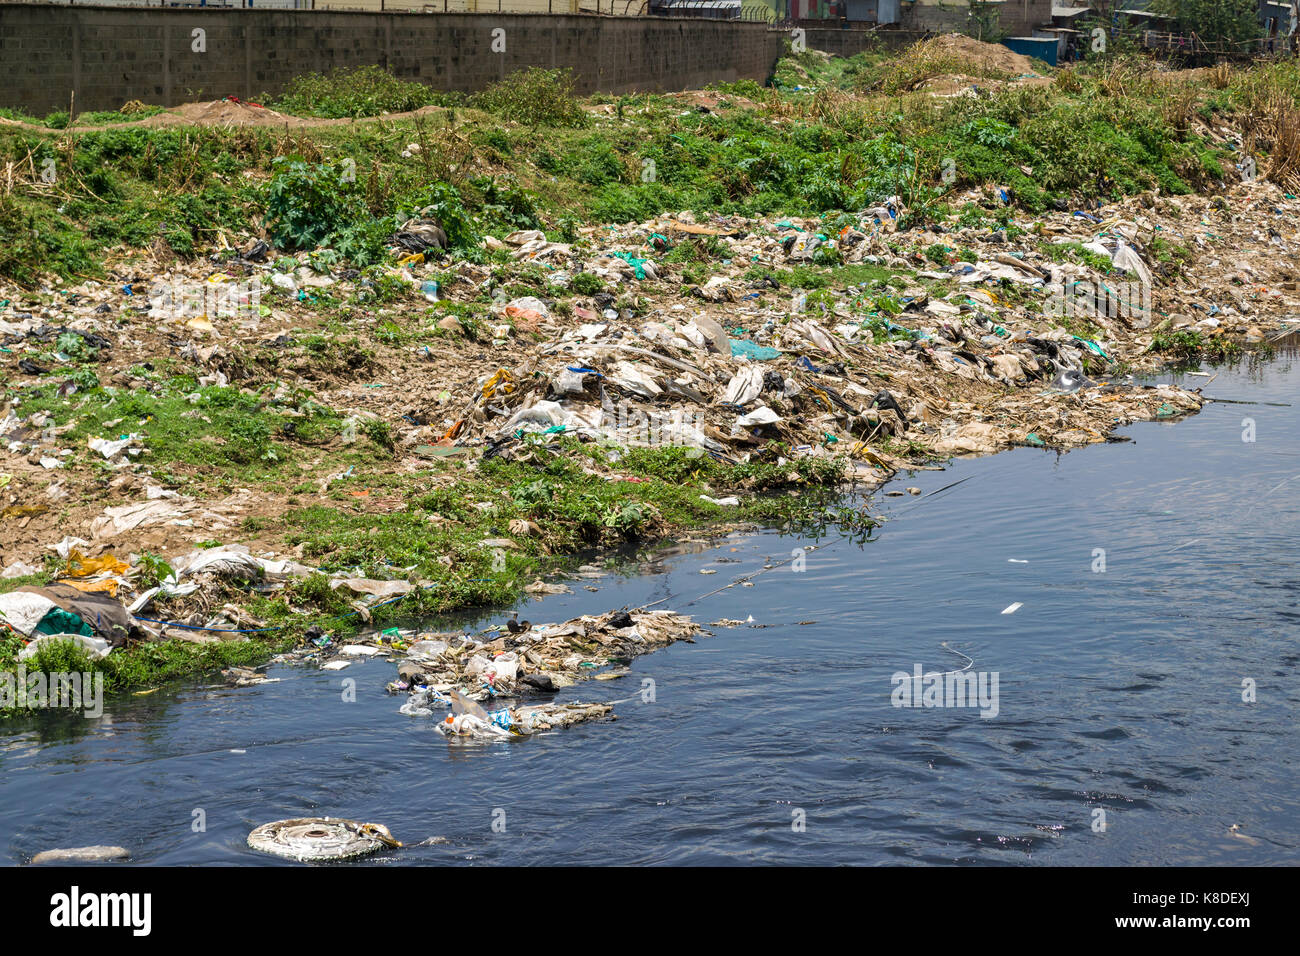 The Ngong river which is polluted with rubbish, plastic waste and garbage, Nairobi, Kenya - Stock Image